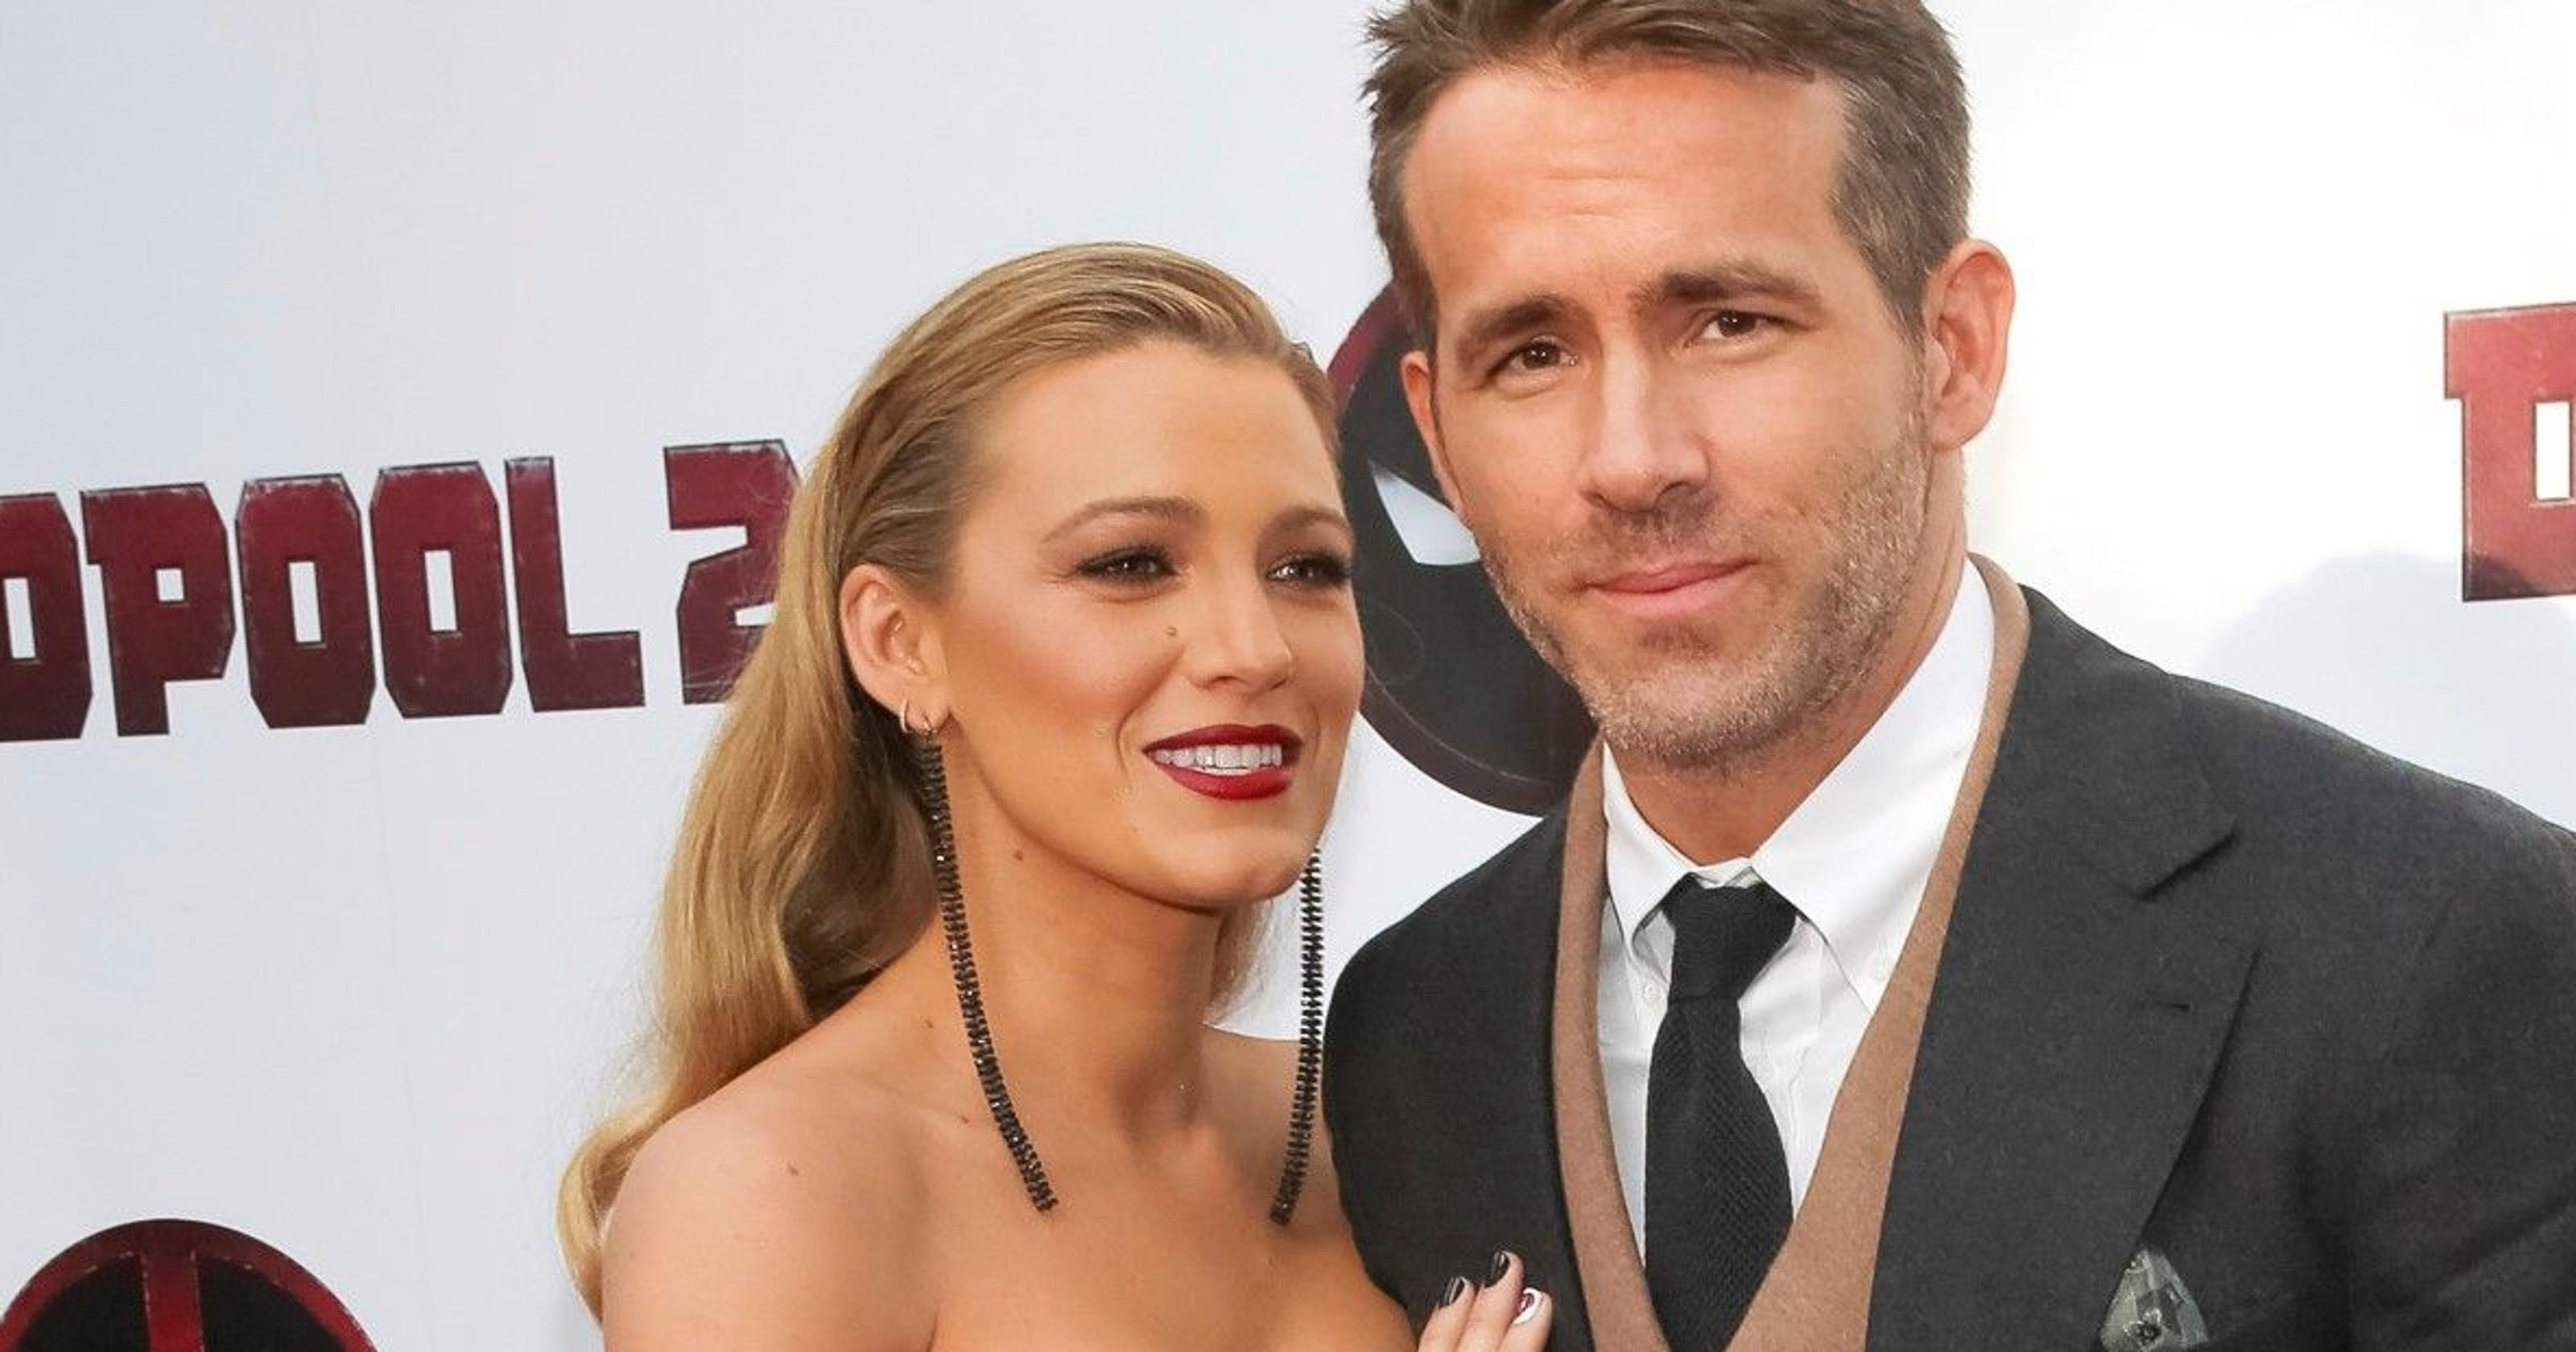 ryan reynolds trolls wife blake lively 39 s risqu instagram photo again. Black Bedroom Furniture Sets. Home Design Ideas